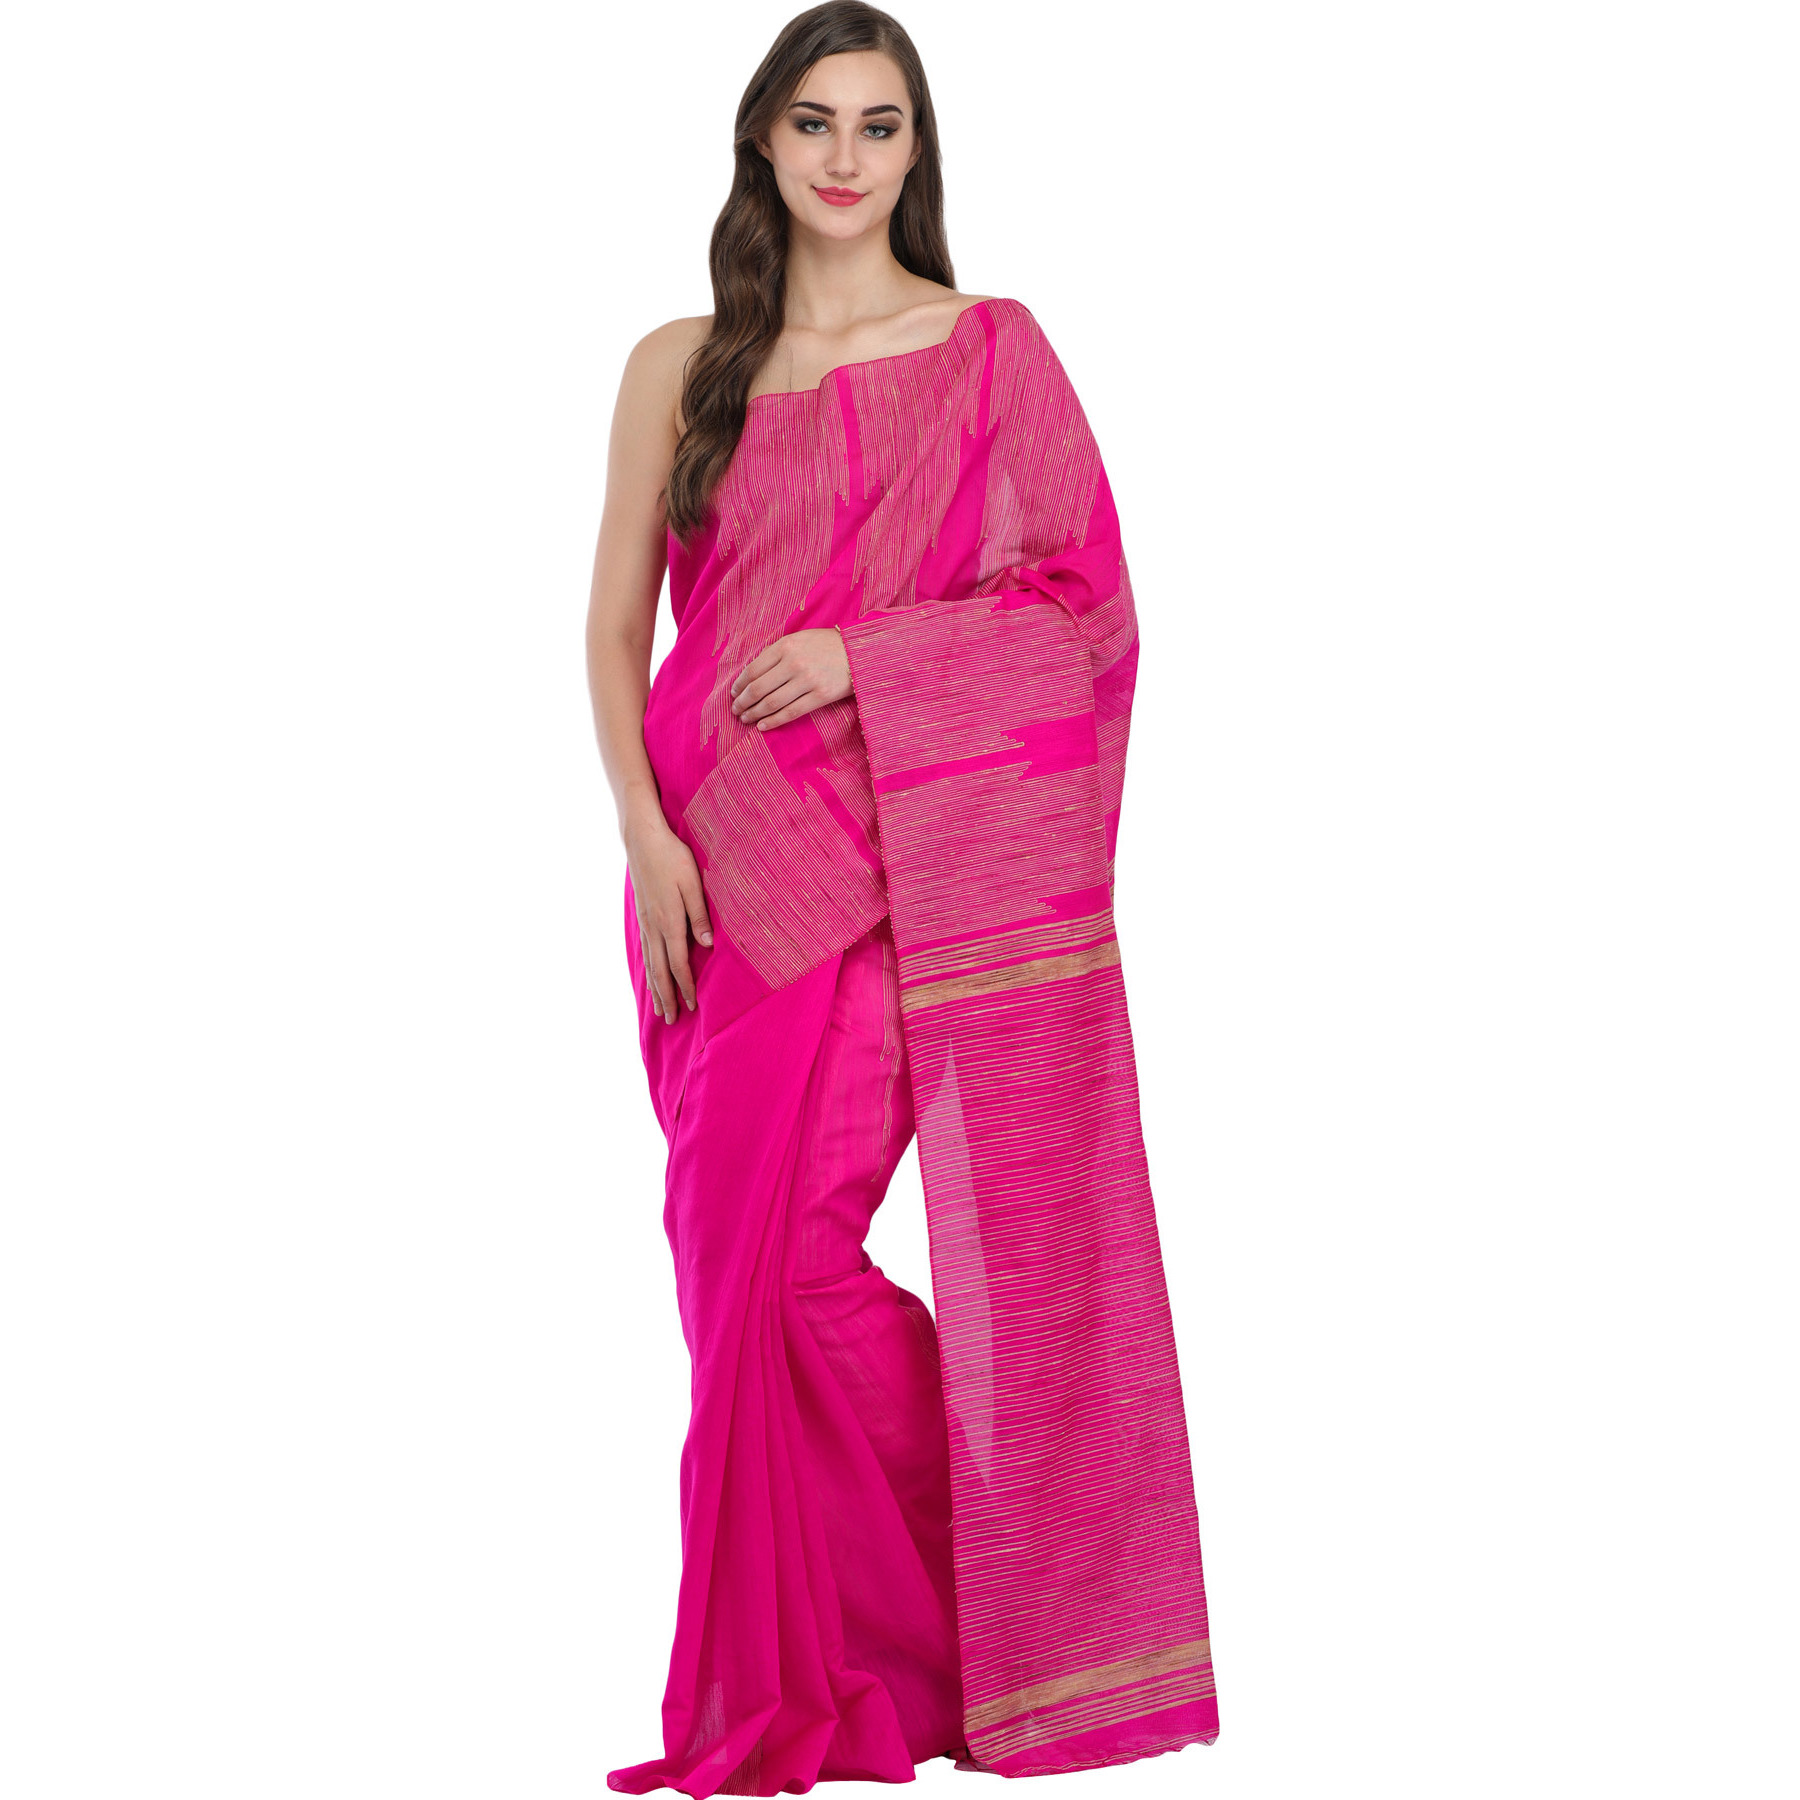 Vibrant-Pink Purbasthali Sari from Jharkhand with Woven Stripes